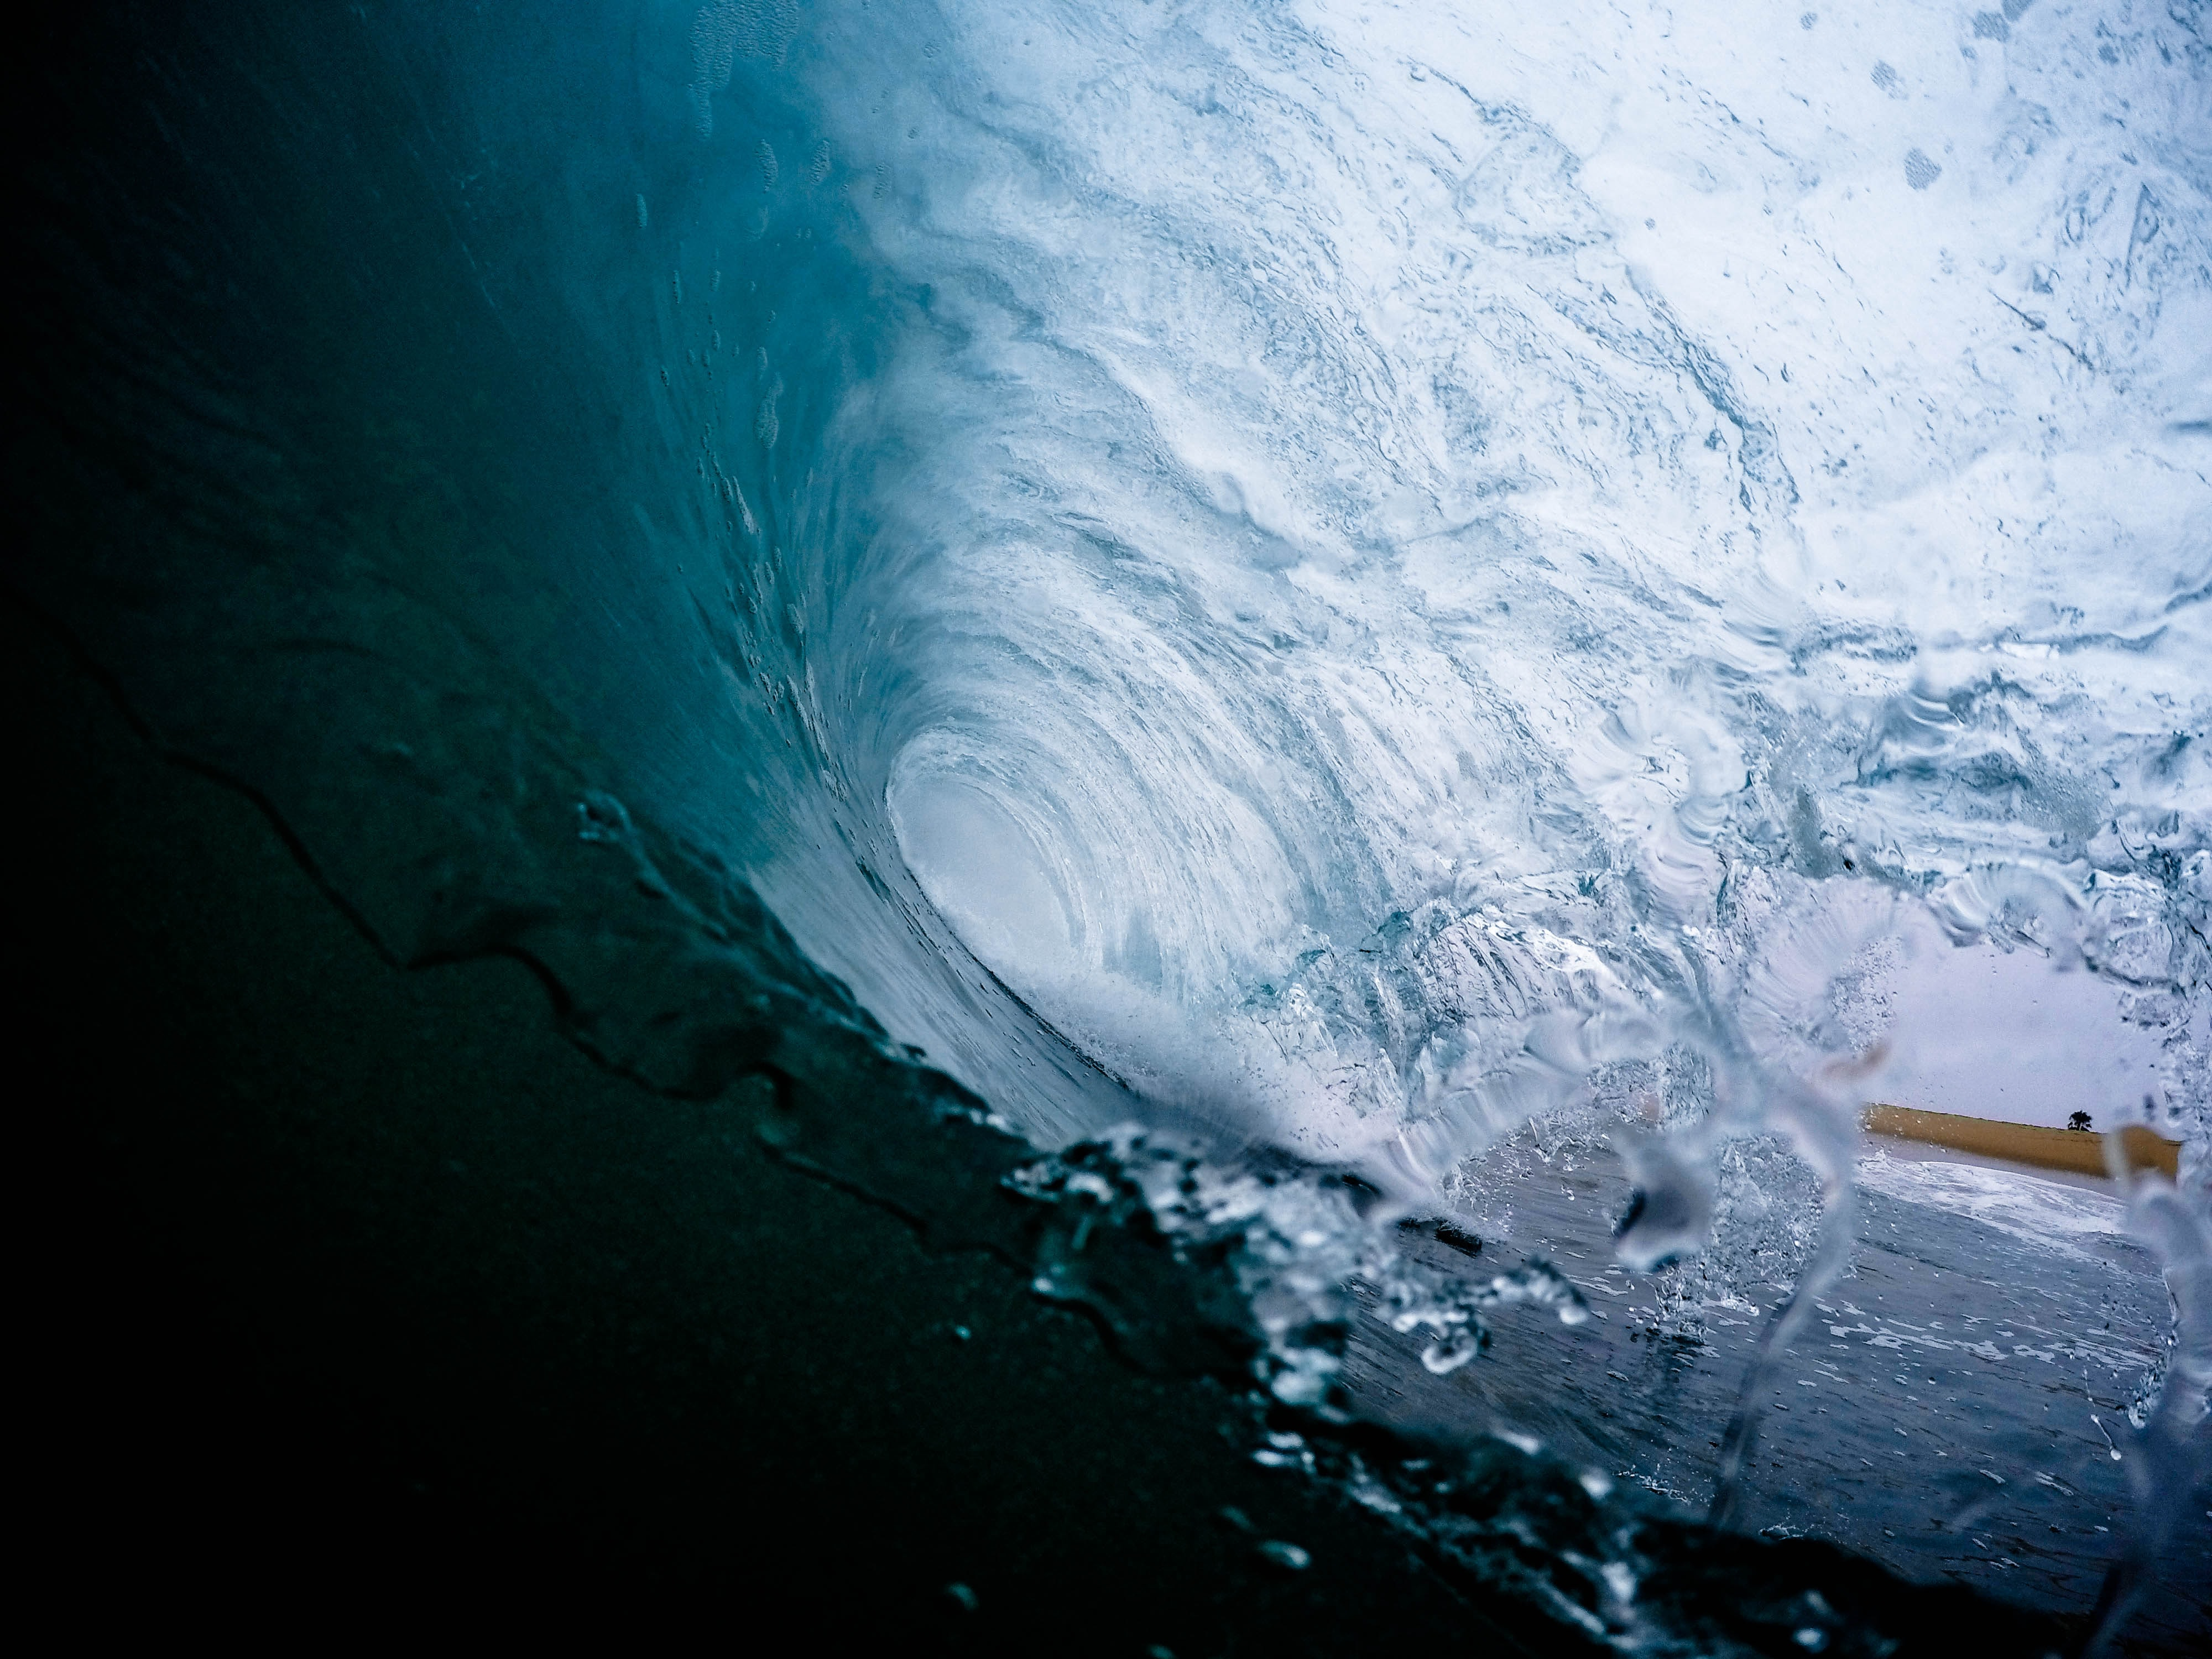 View from the inside of a surf wave at Newport Beach